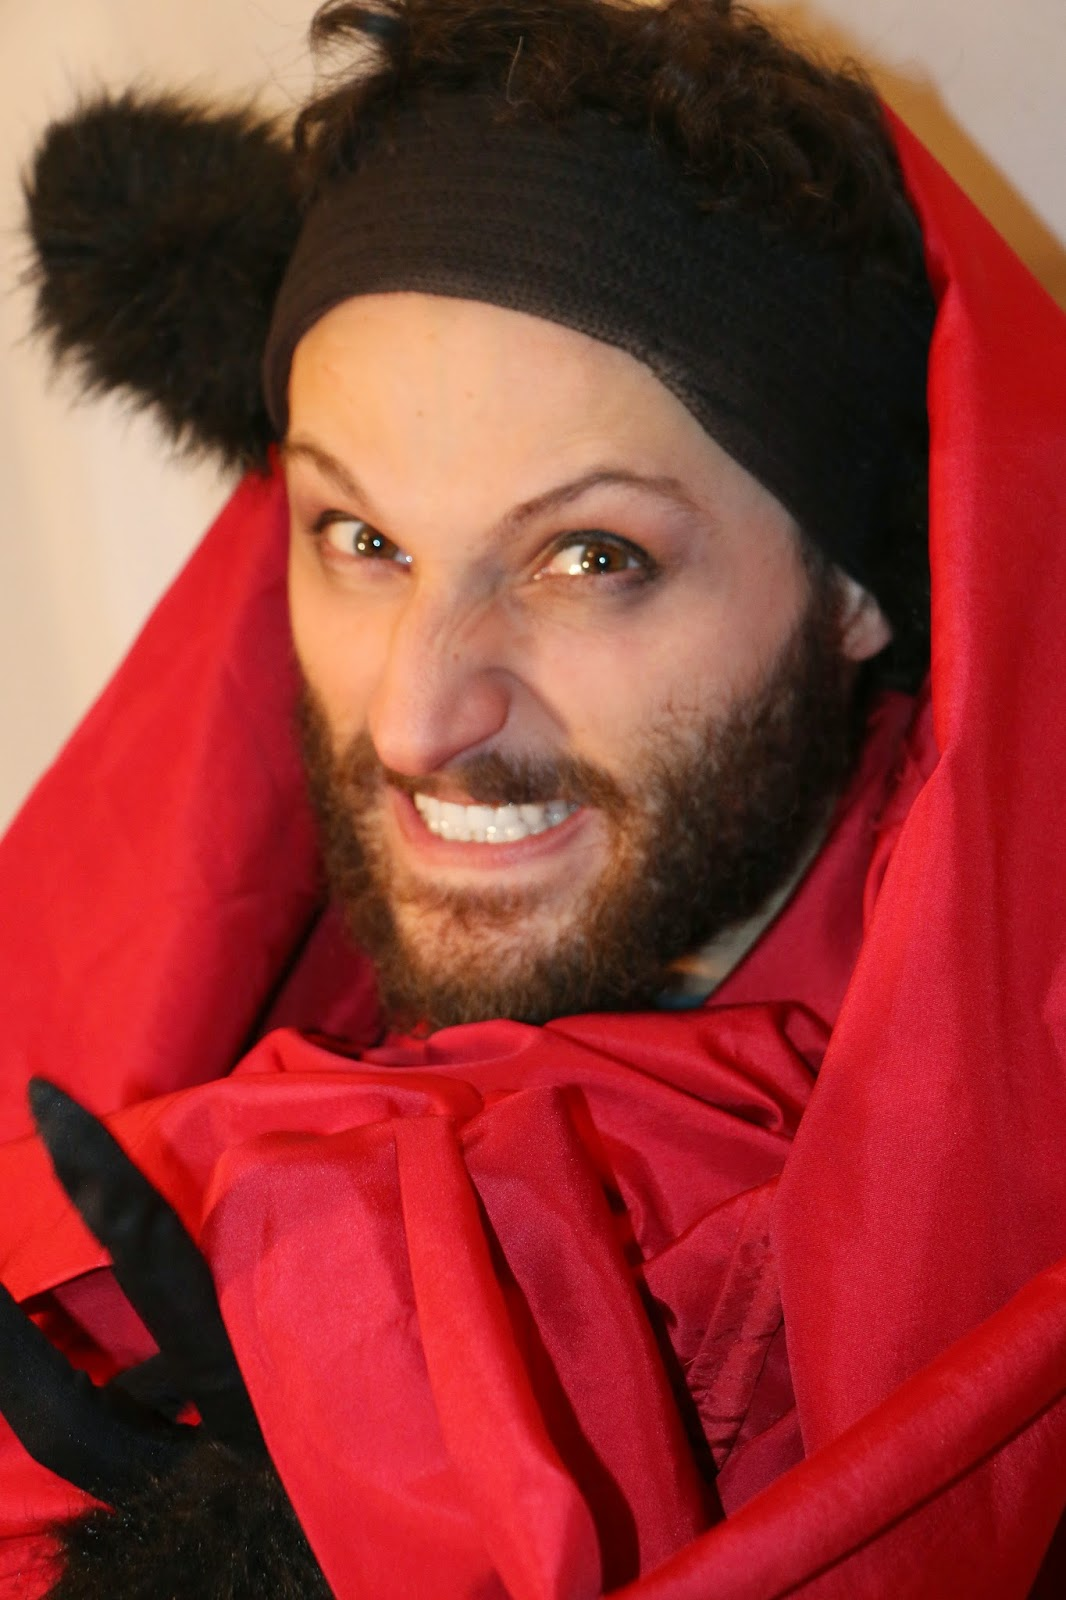 THE CHARMING BIG BAD WOLF-1J-RED RIDING HOOD 2015--GLEAMS THEATER--IRA SOKOLOVA- PHOTO: SHAHRZAD GHAFFARI WESTMOUNT, QUEBEC, CANADA